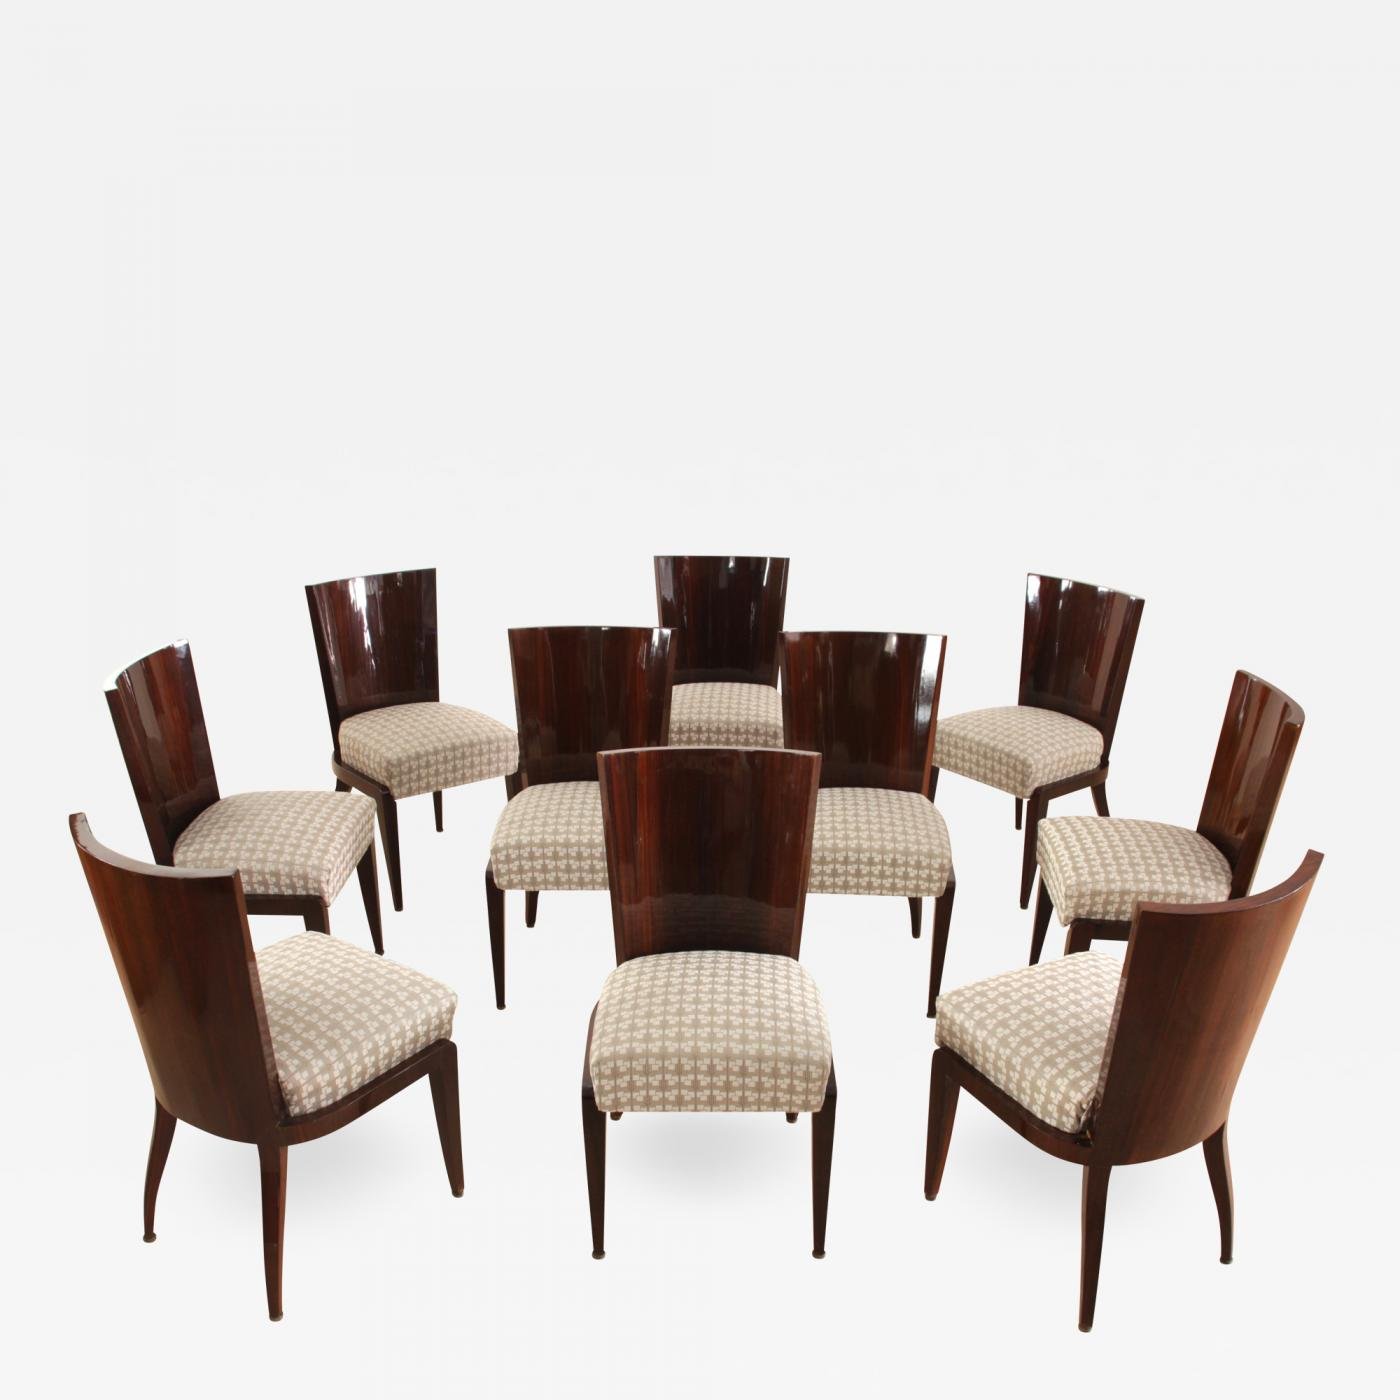 Set of Ten Art Deco Dining Room Chairs, Mahogany Veneer, France, circa 1930